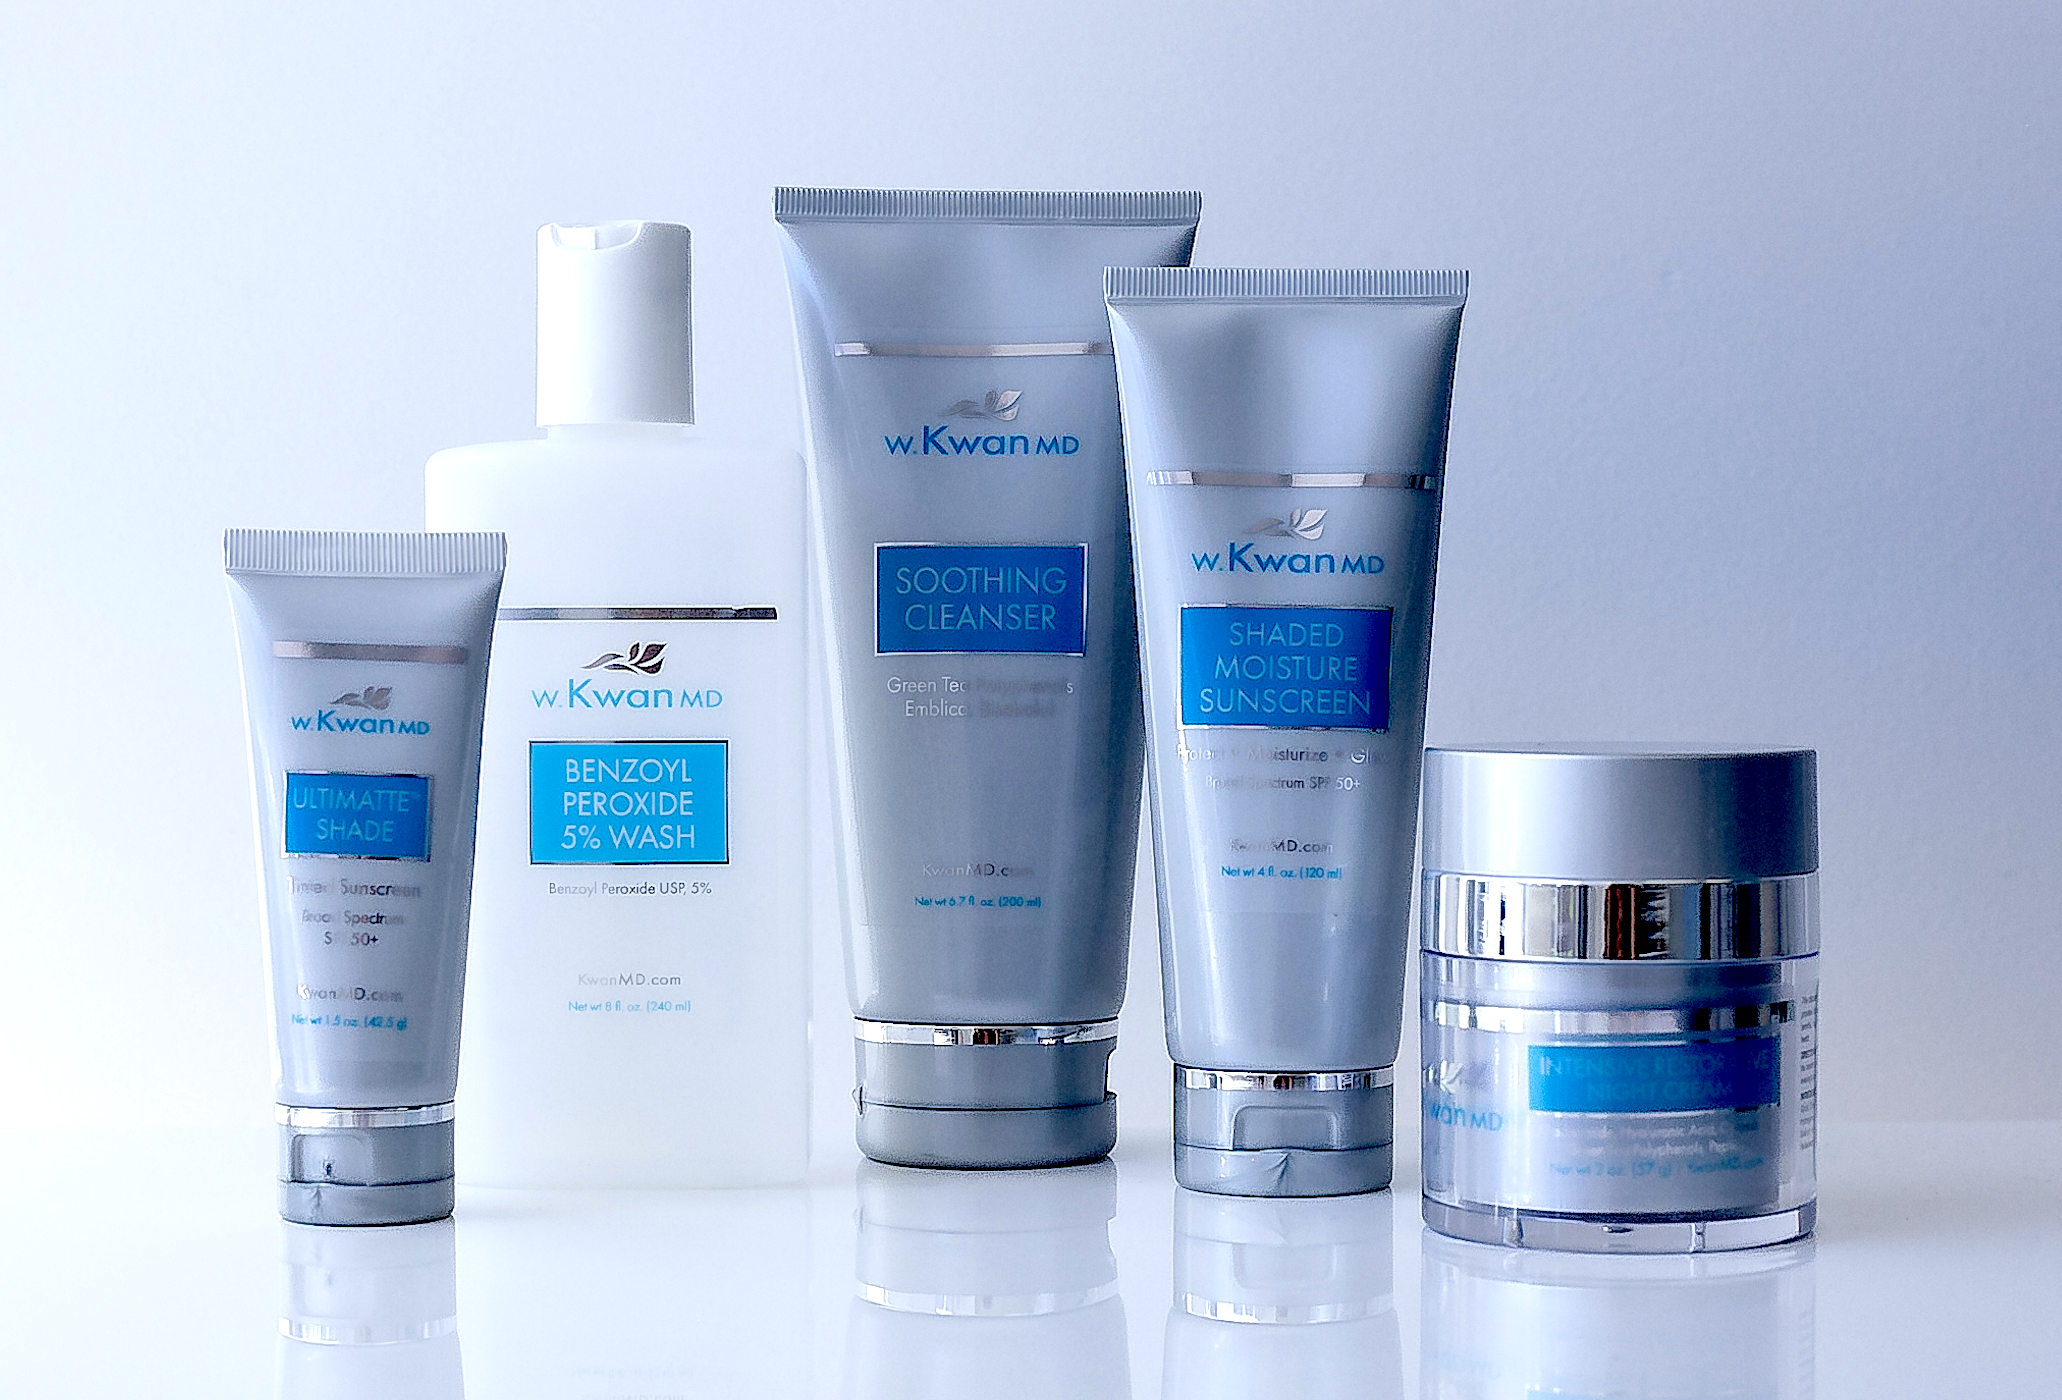 Check Out These Pharmaceutical Grade Skincare Products Skin Care Moisturizer Sunscreen